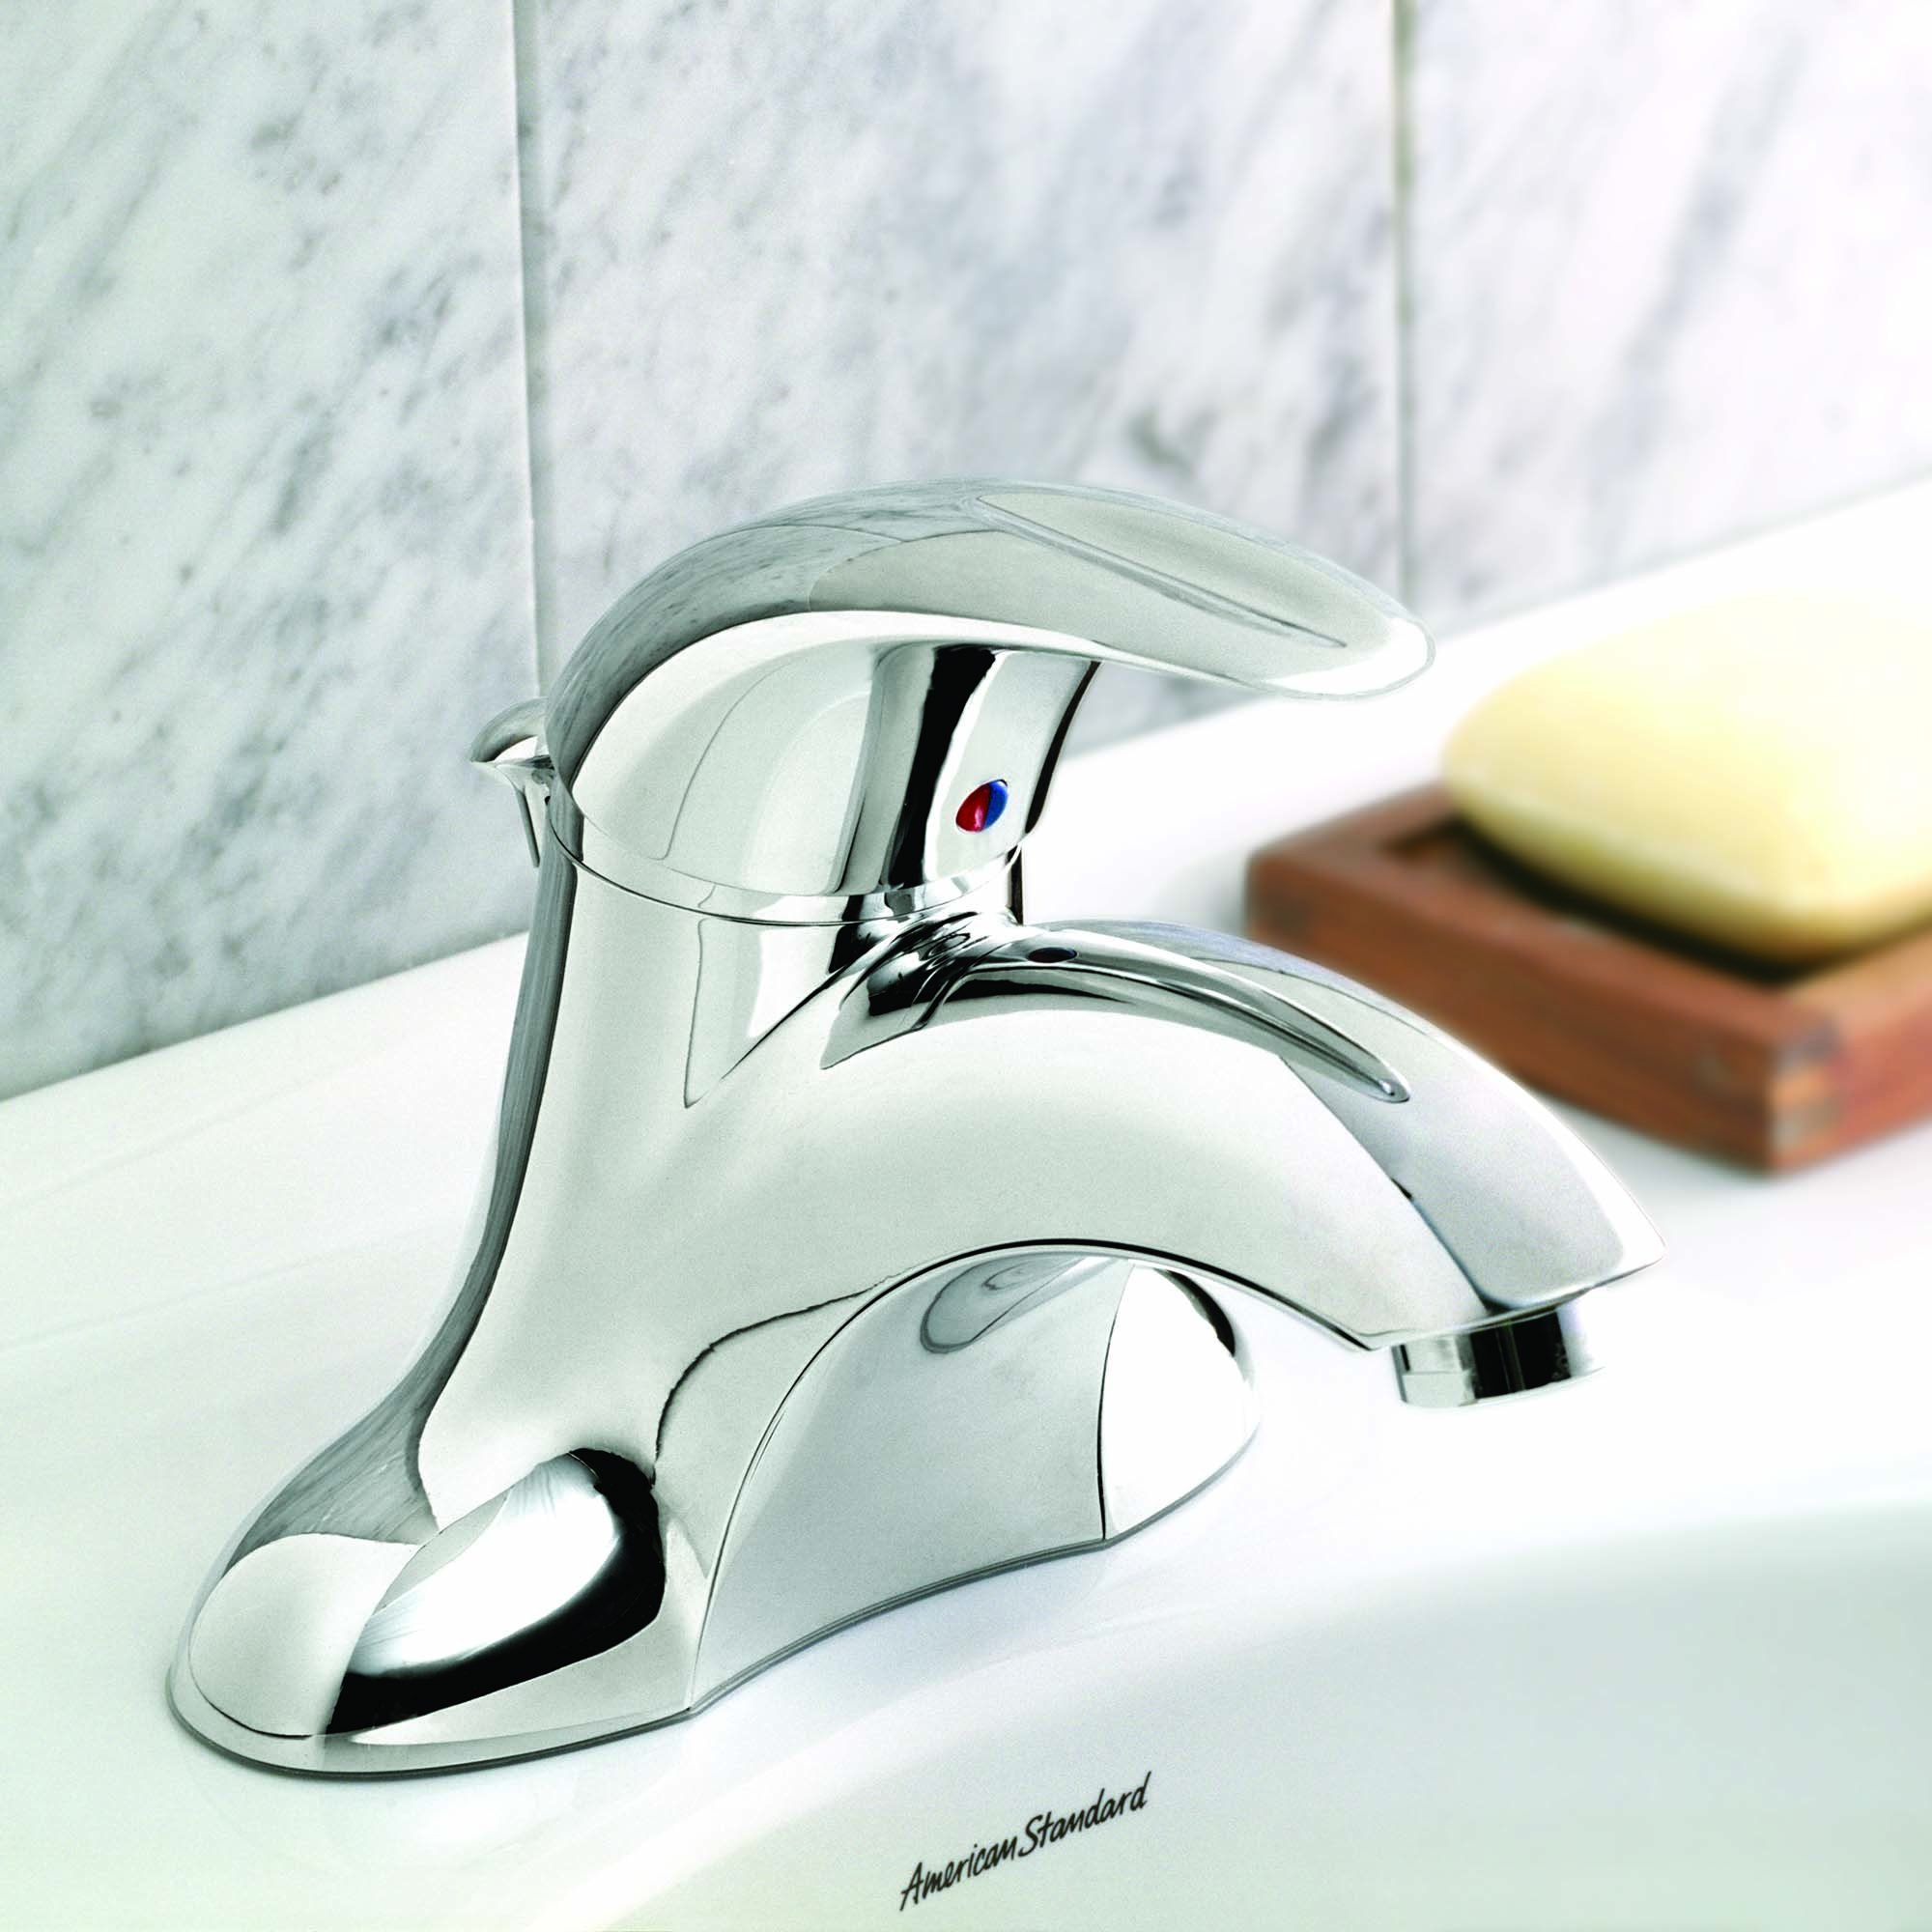 American Standard 7385.000.002 Reliant 3 Bathroom Centerset Faucet, Polished Chrome by American Standard (Image #2)